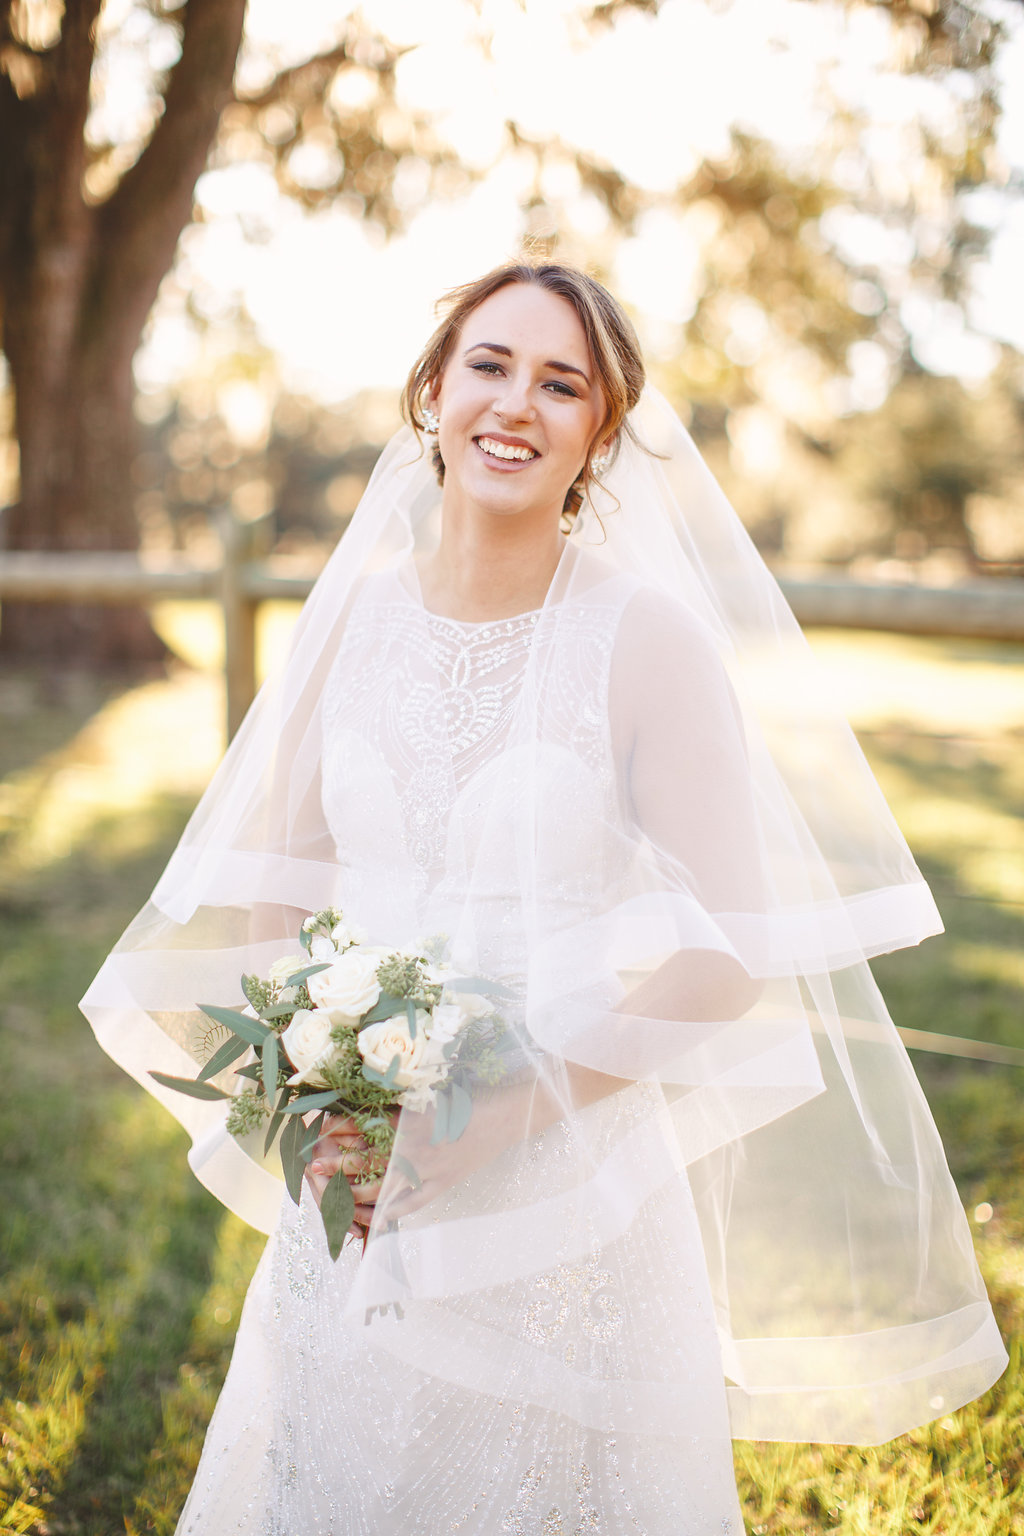 Bride in Tara Keely from Verita Bridal Boutique  //  Charleston, South Carolina wedding dress  //  Bride and her maids at Sugah Cain Plantation in front of white horse and Carriage  //  on A Lowocountry Wedding Magazine & Blog